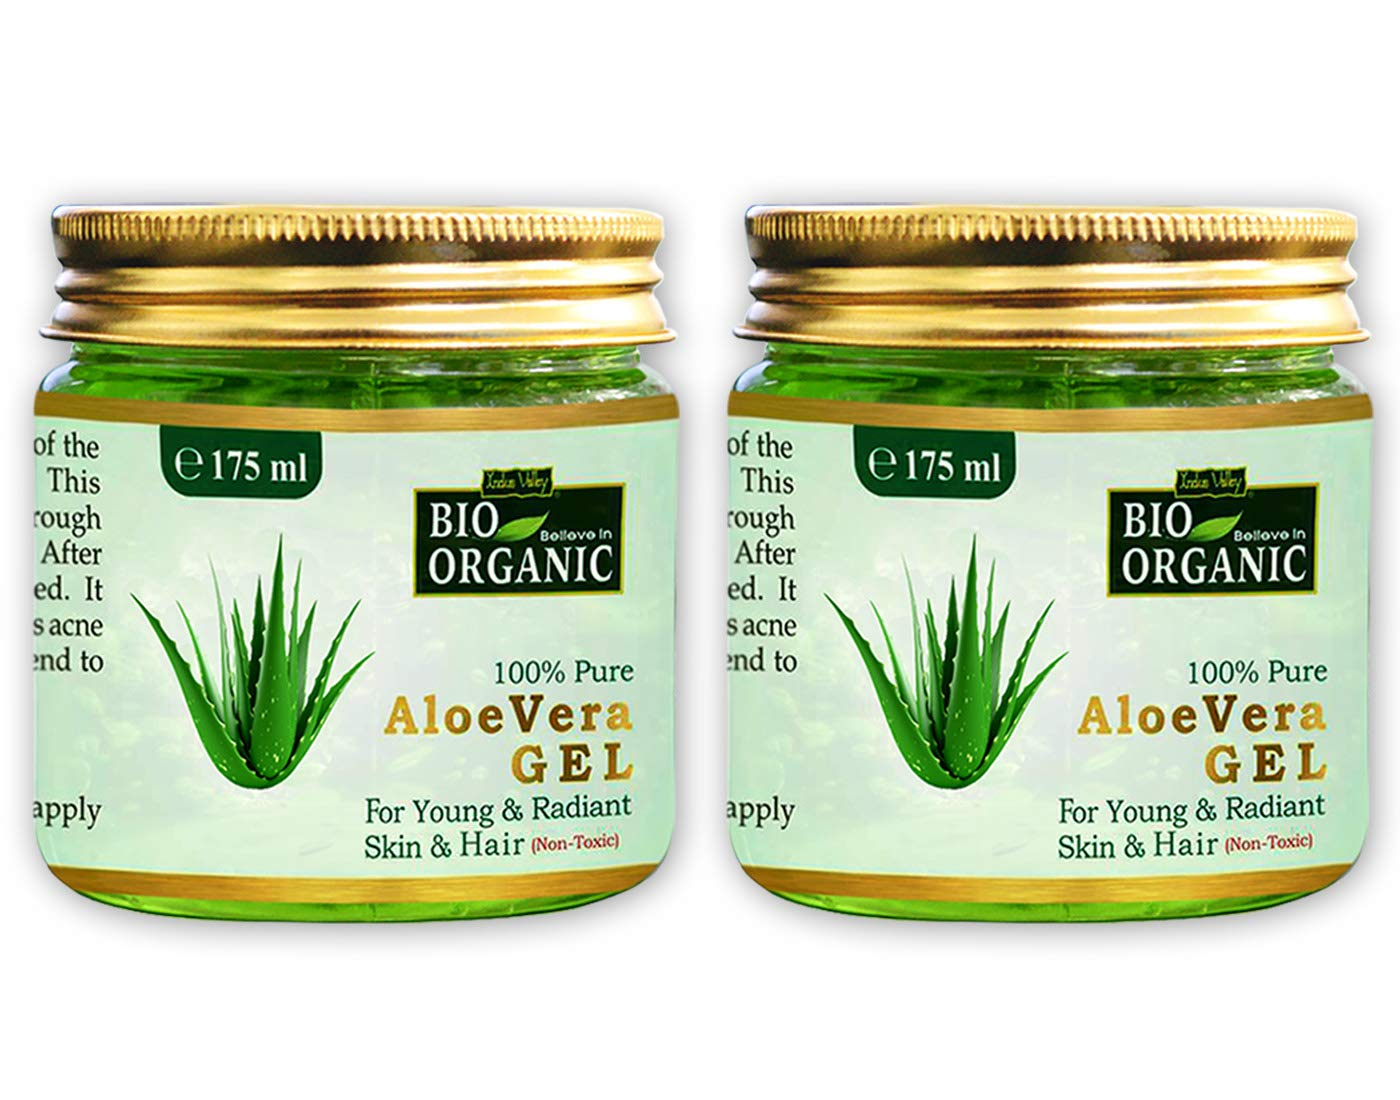 Indus valley 100% Natural, Pure Aloe Vera Gel for Skin and Hair (Set of 2, 175ml/Pc.) product image